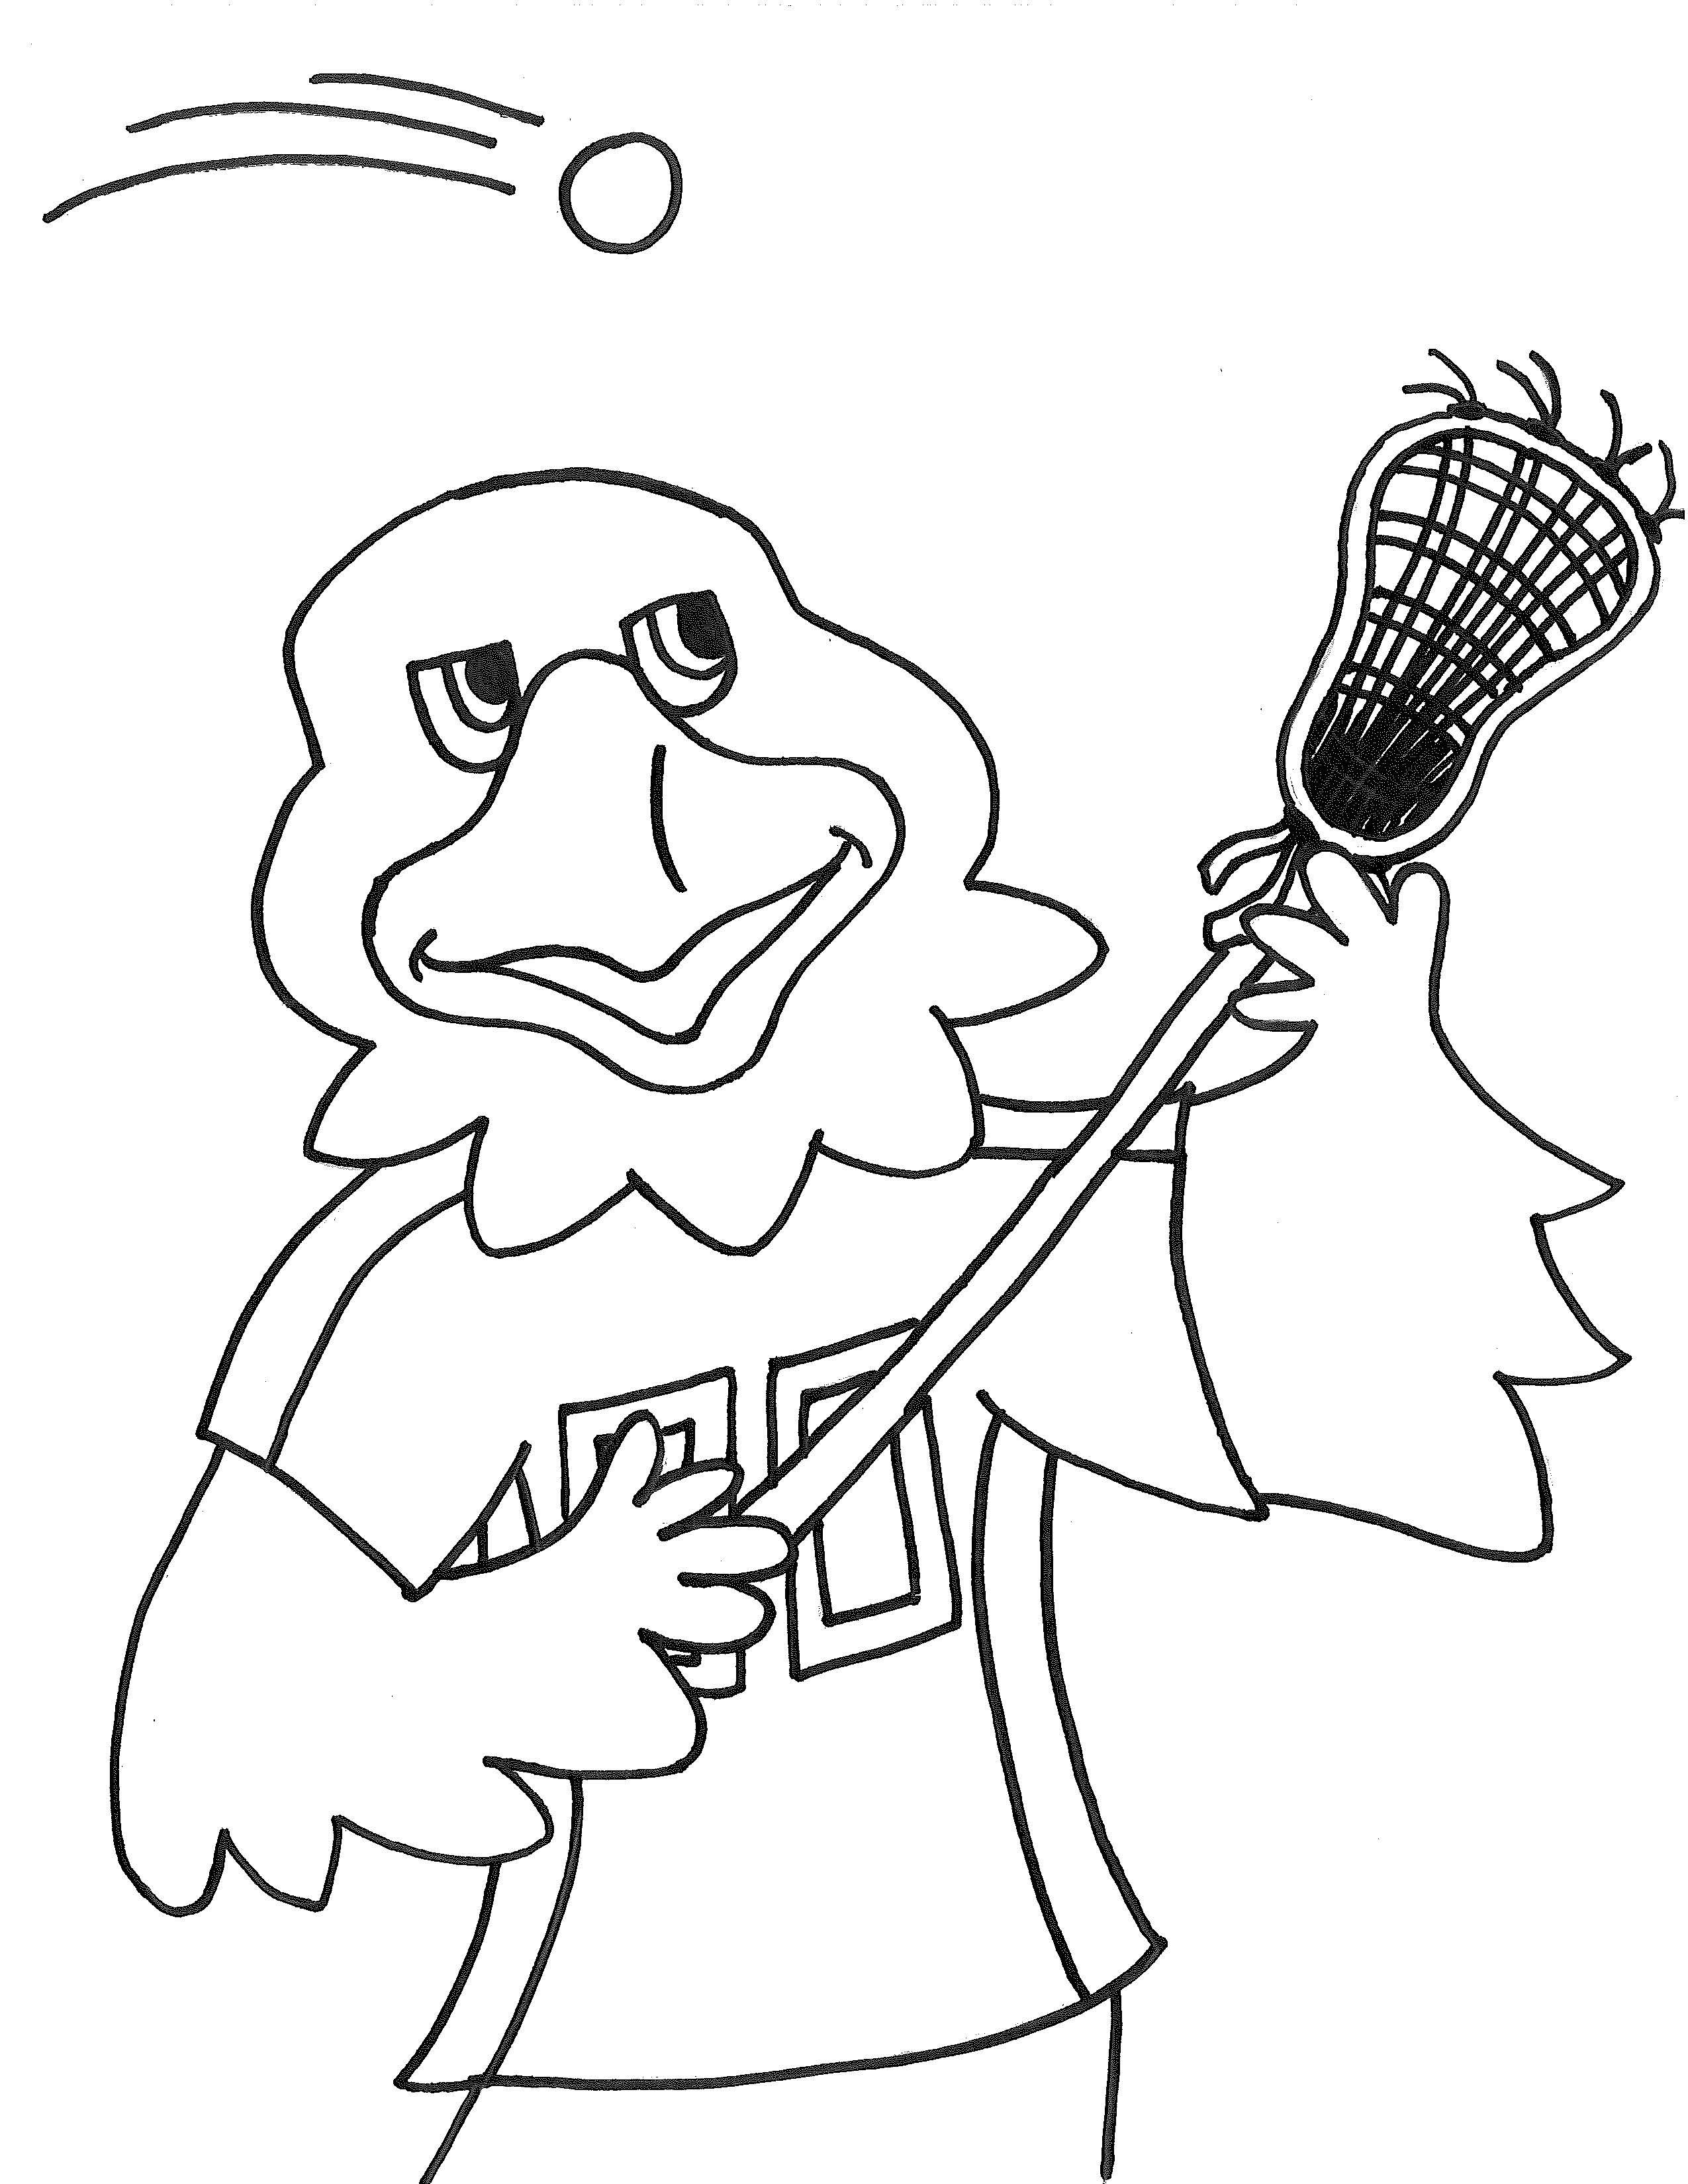 Have Futureeagles Going With You To Bcreunion Here Are Some Coloring Pages For Them To Enjoy Coloring Pages Colouring Pages Eagles